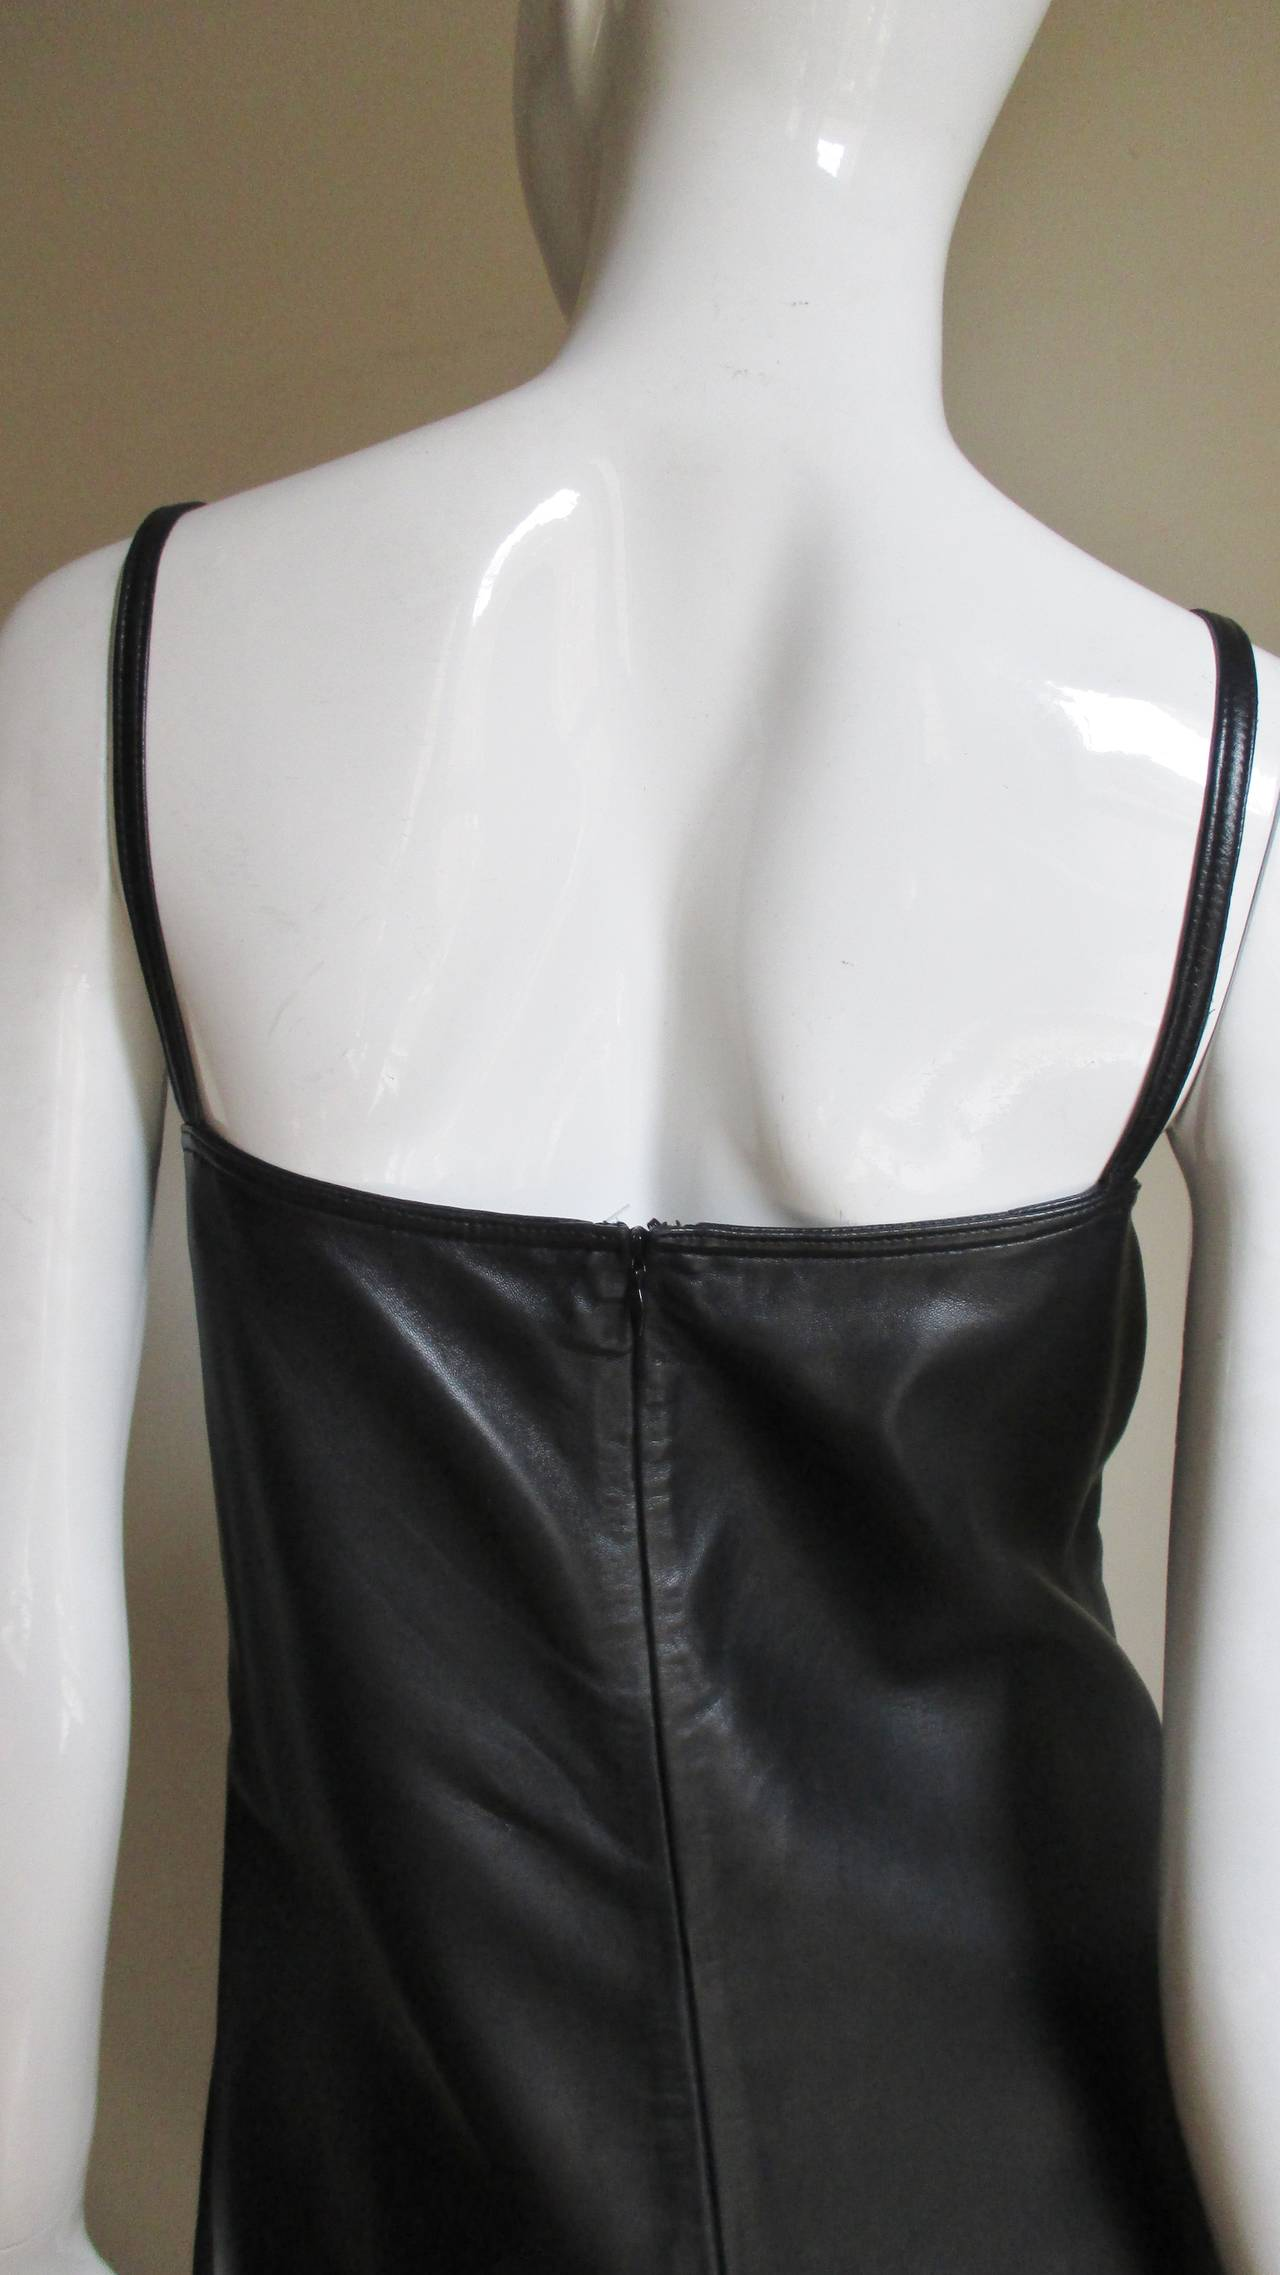 Vintage Gianni Versace Leather Dress with Mink Trim 7